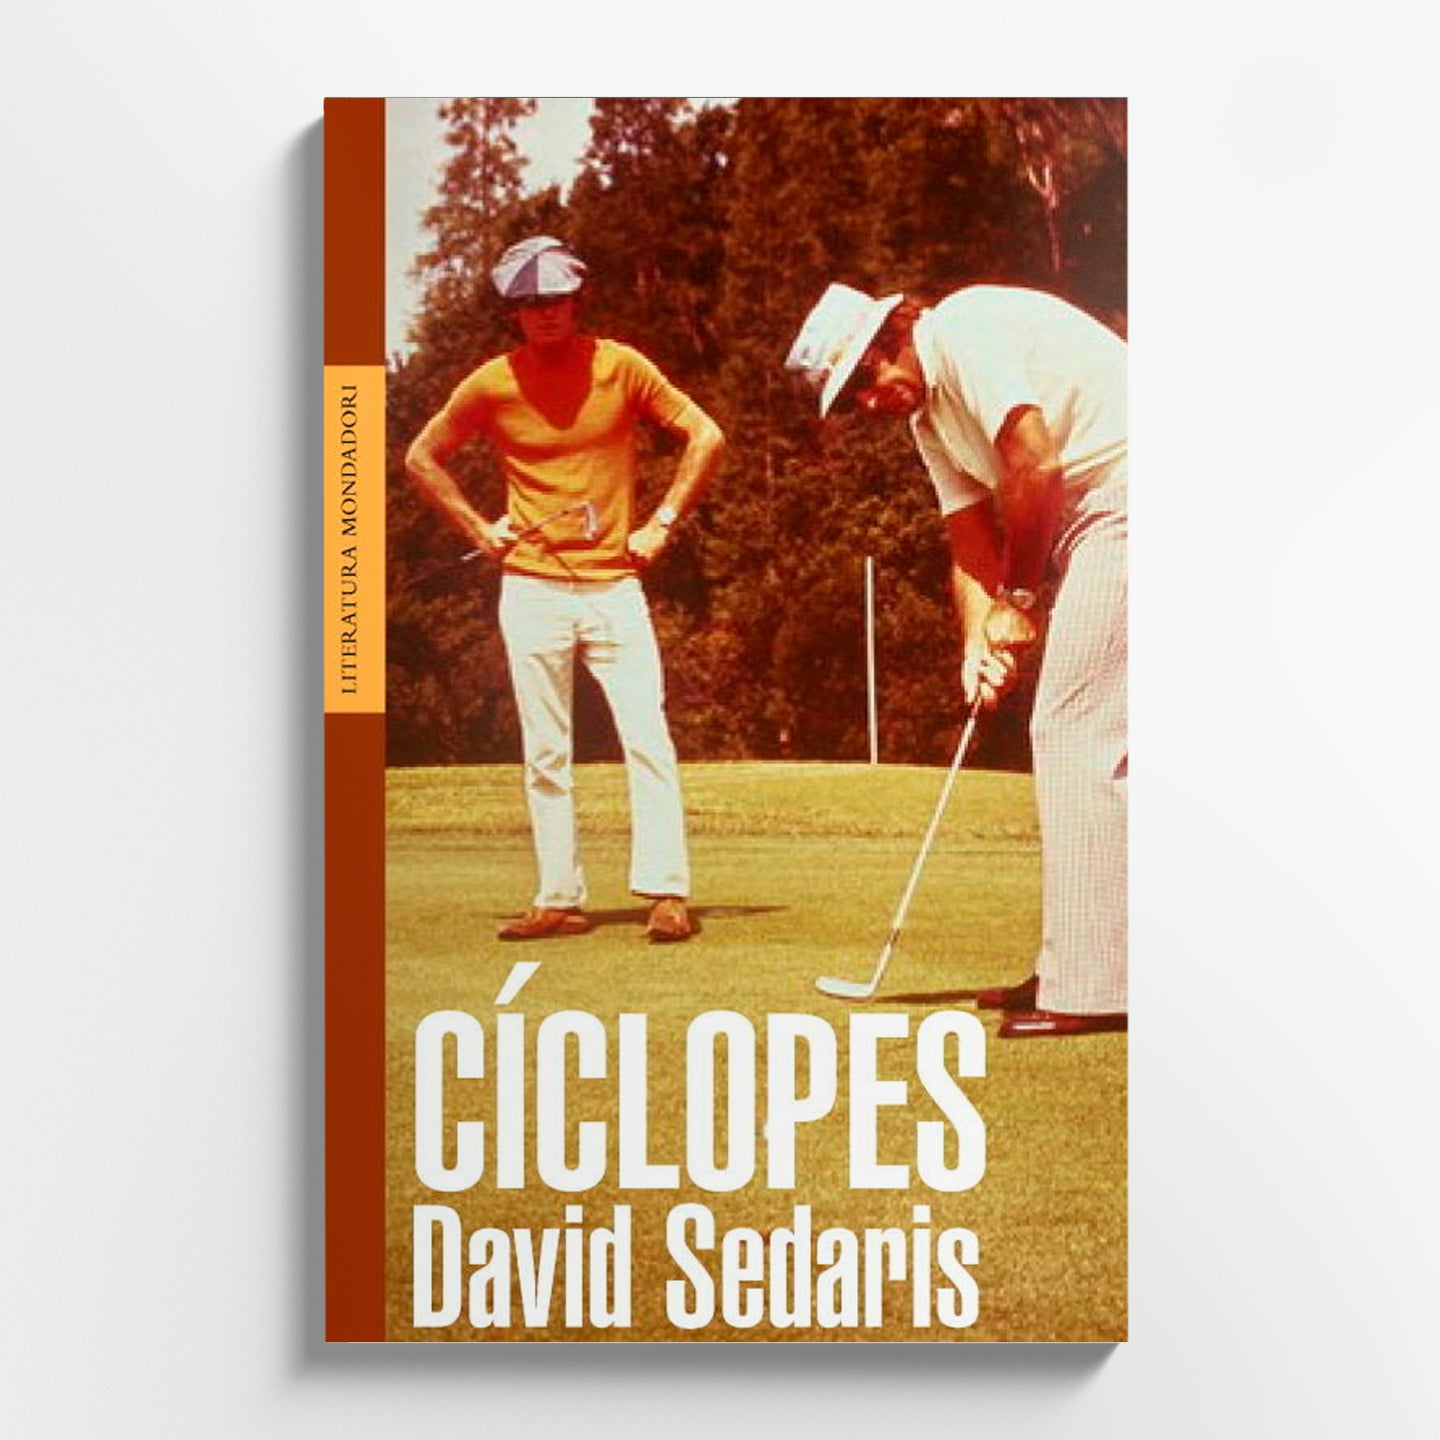 DAVID SEDARIS | Cíclopes